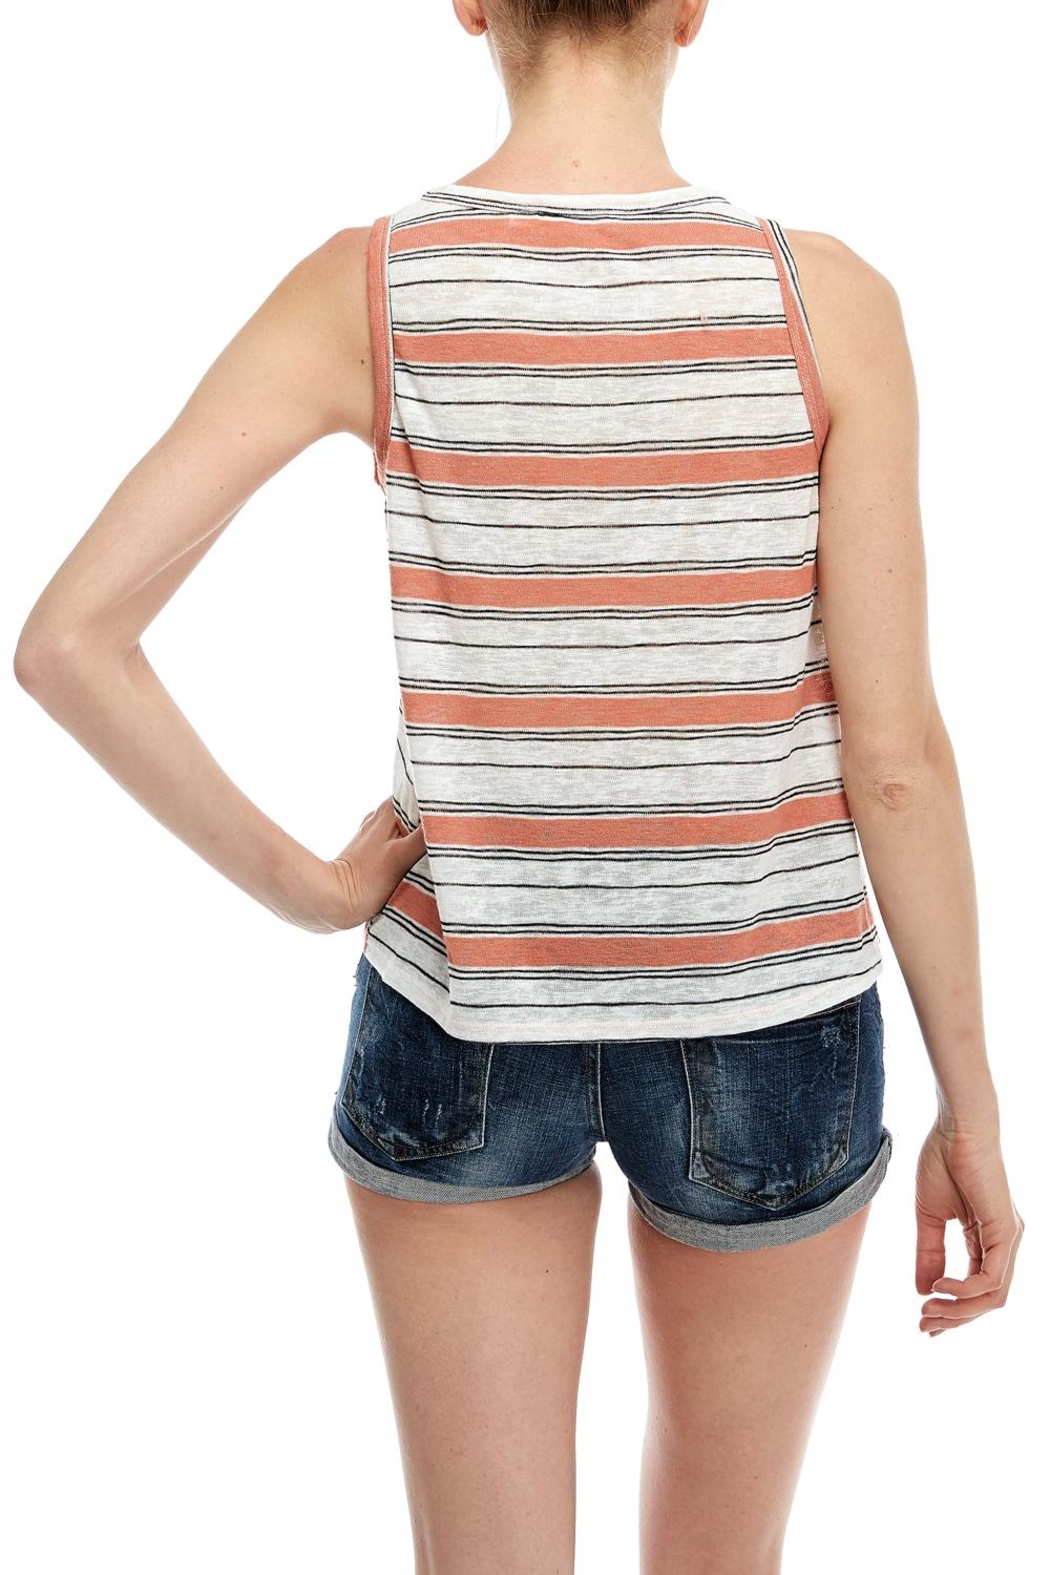 All In Favor Stripe Tank Top - Side Cropped Image